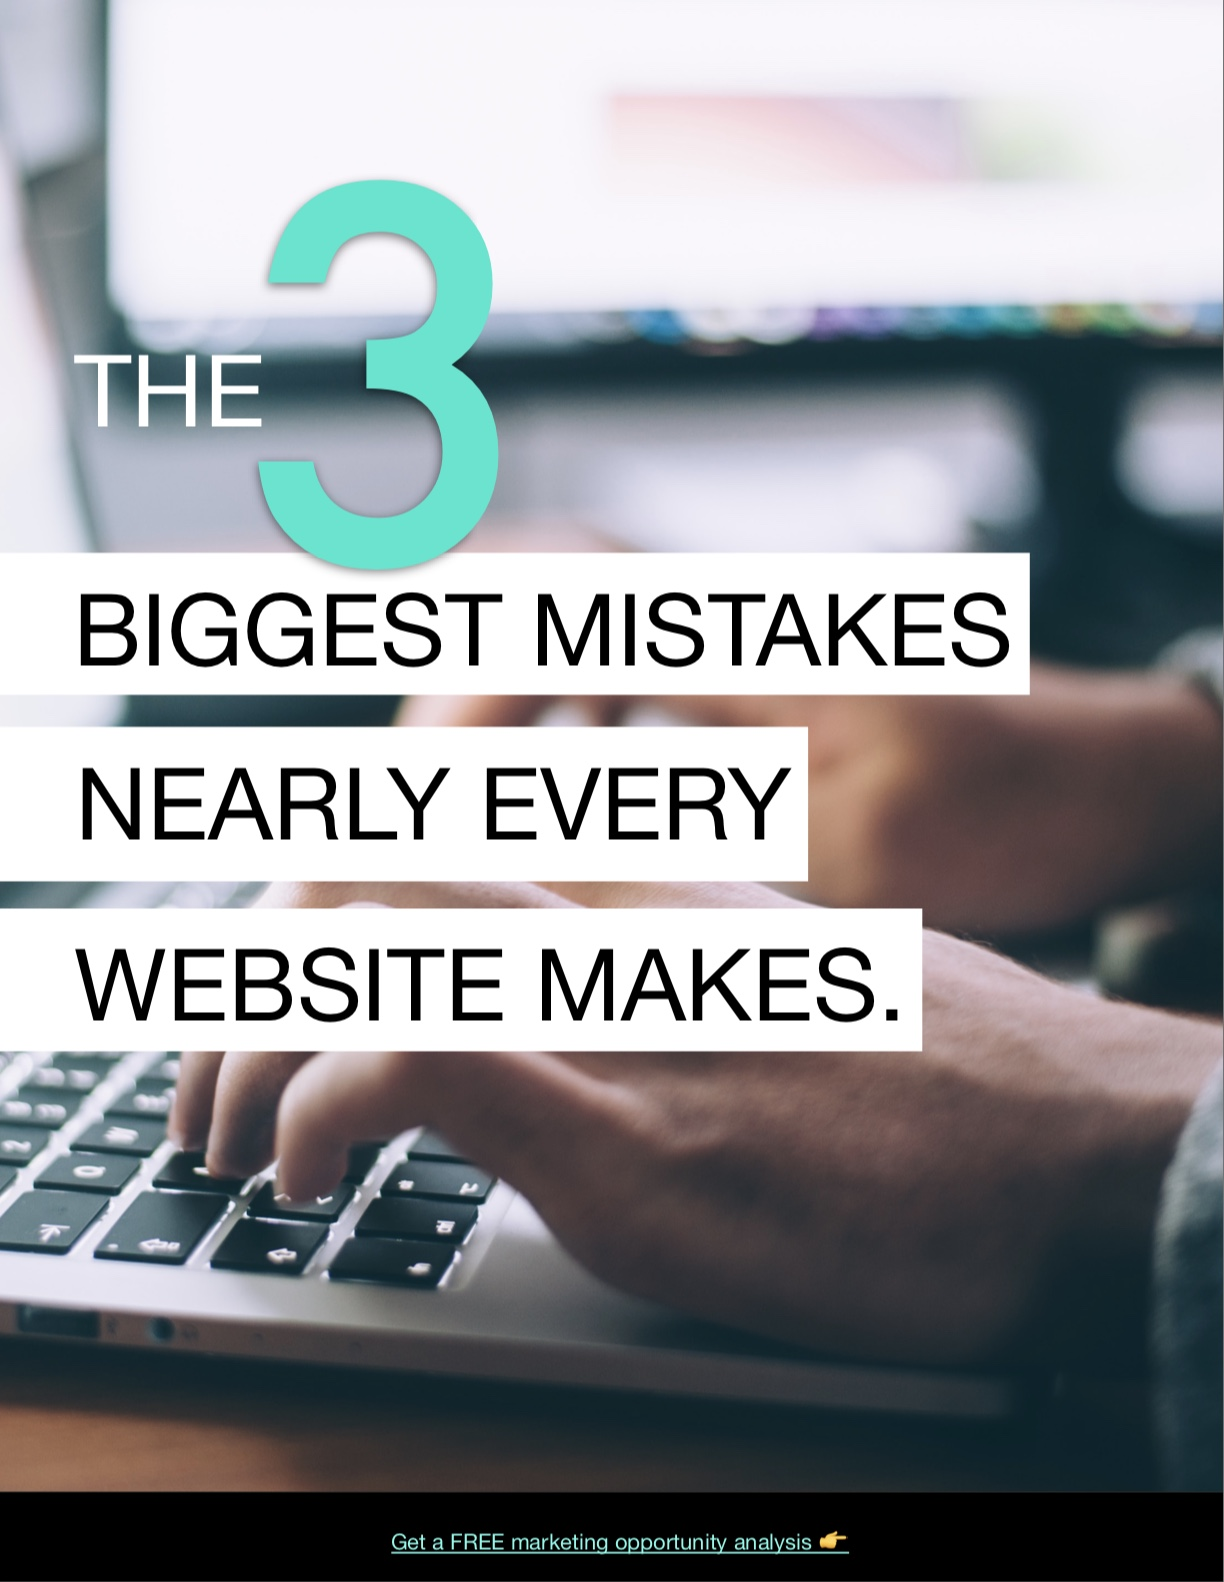 Does your traffic click away? - These 3 mistakes are easily correctible and completely FREE to fix.Unsubscribe any time.